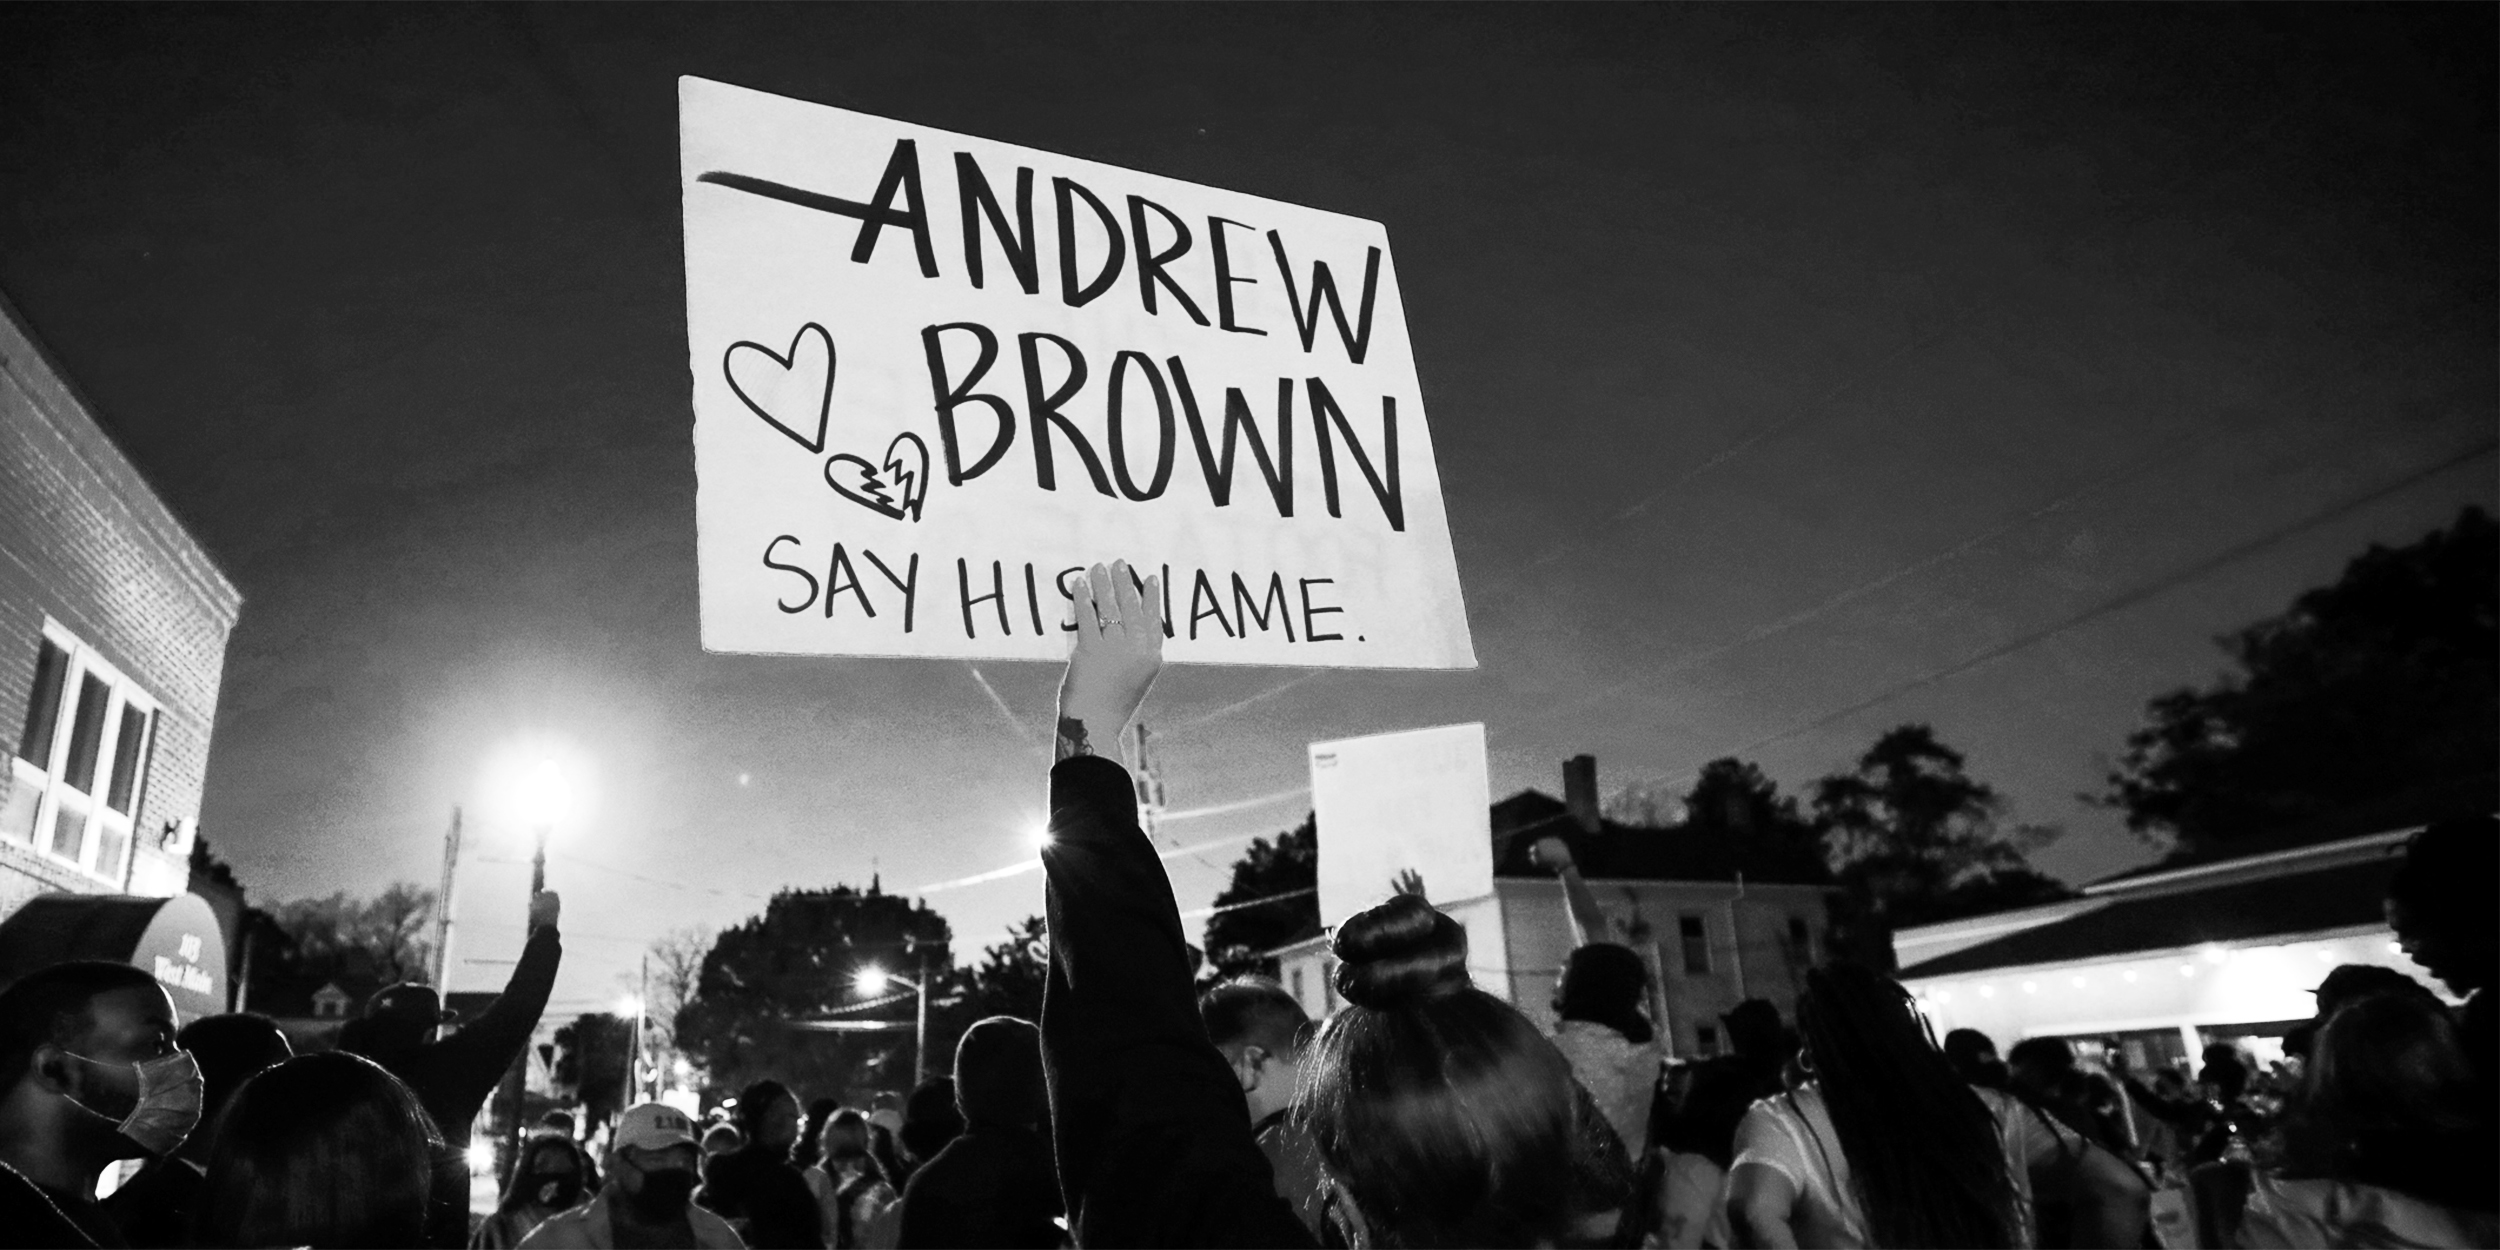 Protesters marching in Elizabeth City, N.C., over Andrew Brown's killing 6/9/21